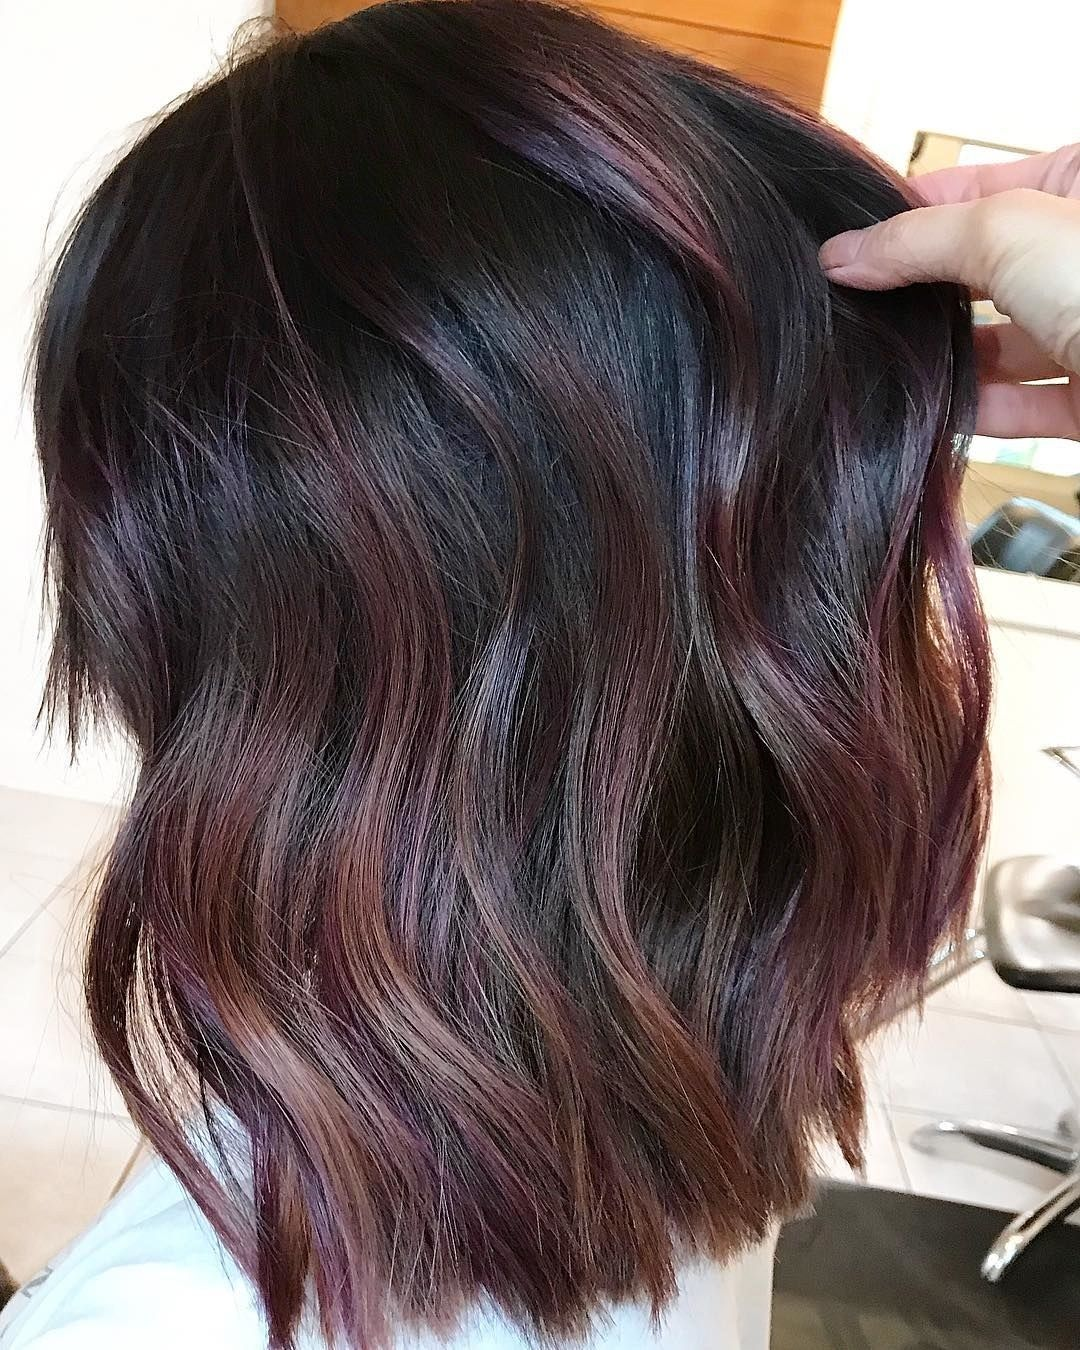 How to Try the Violet,Copper Hair Trend Without Bleaching